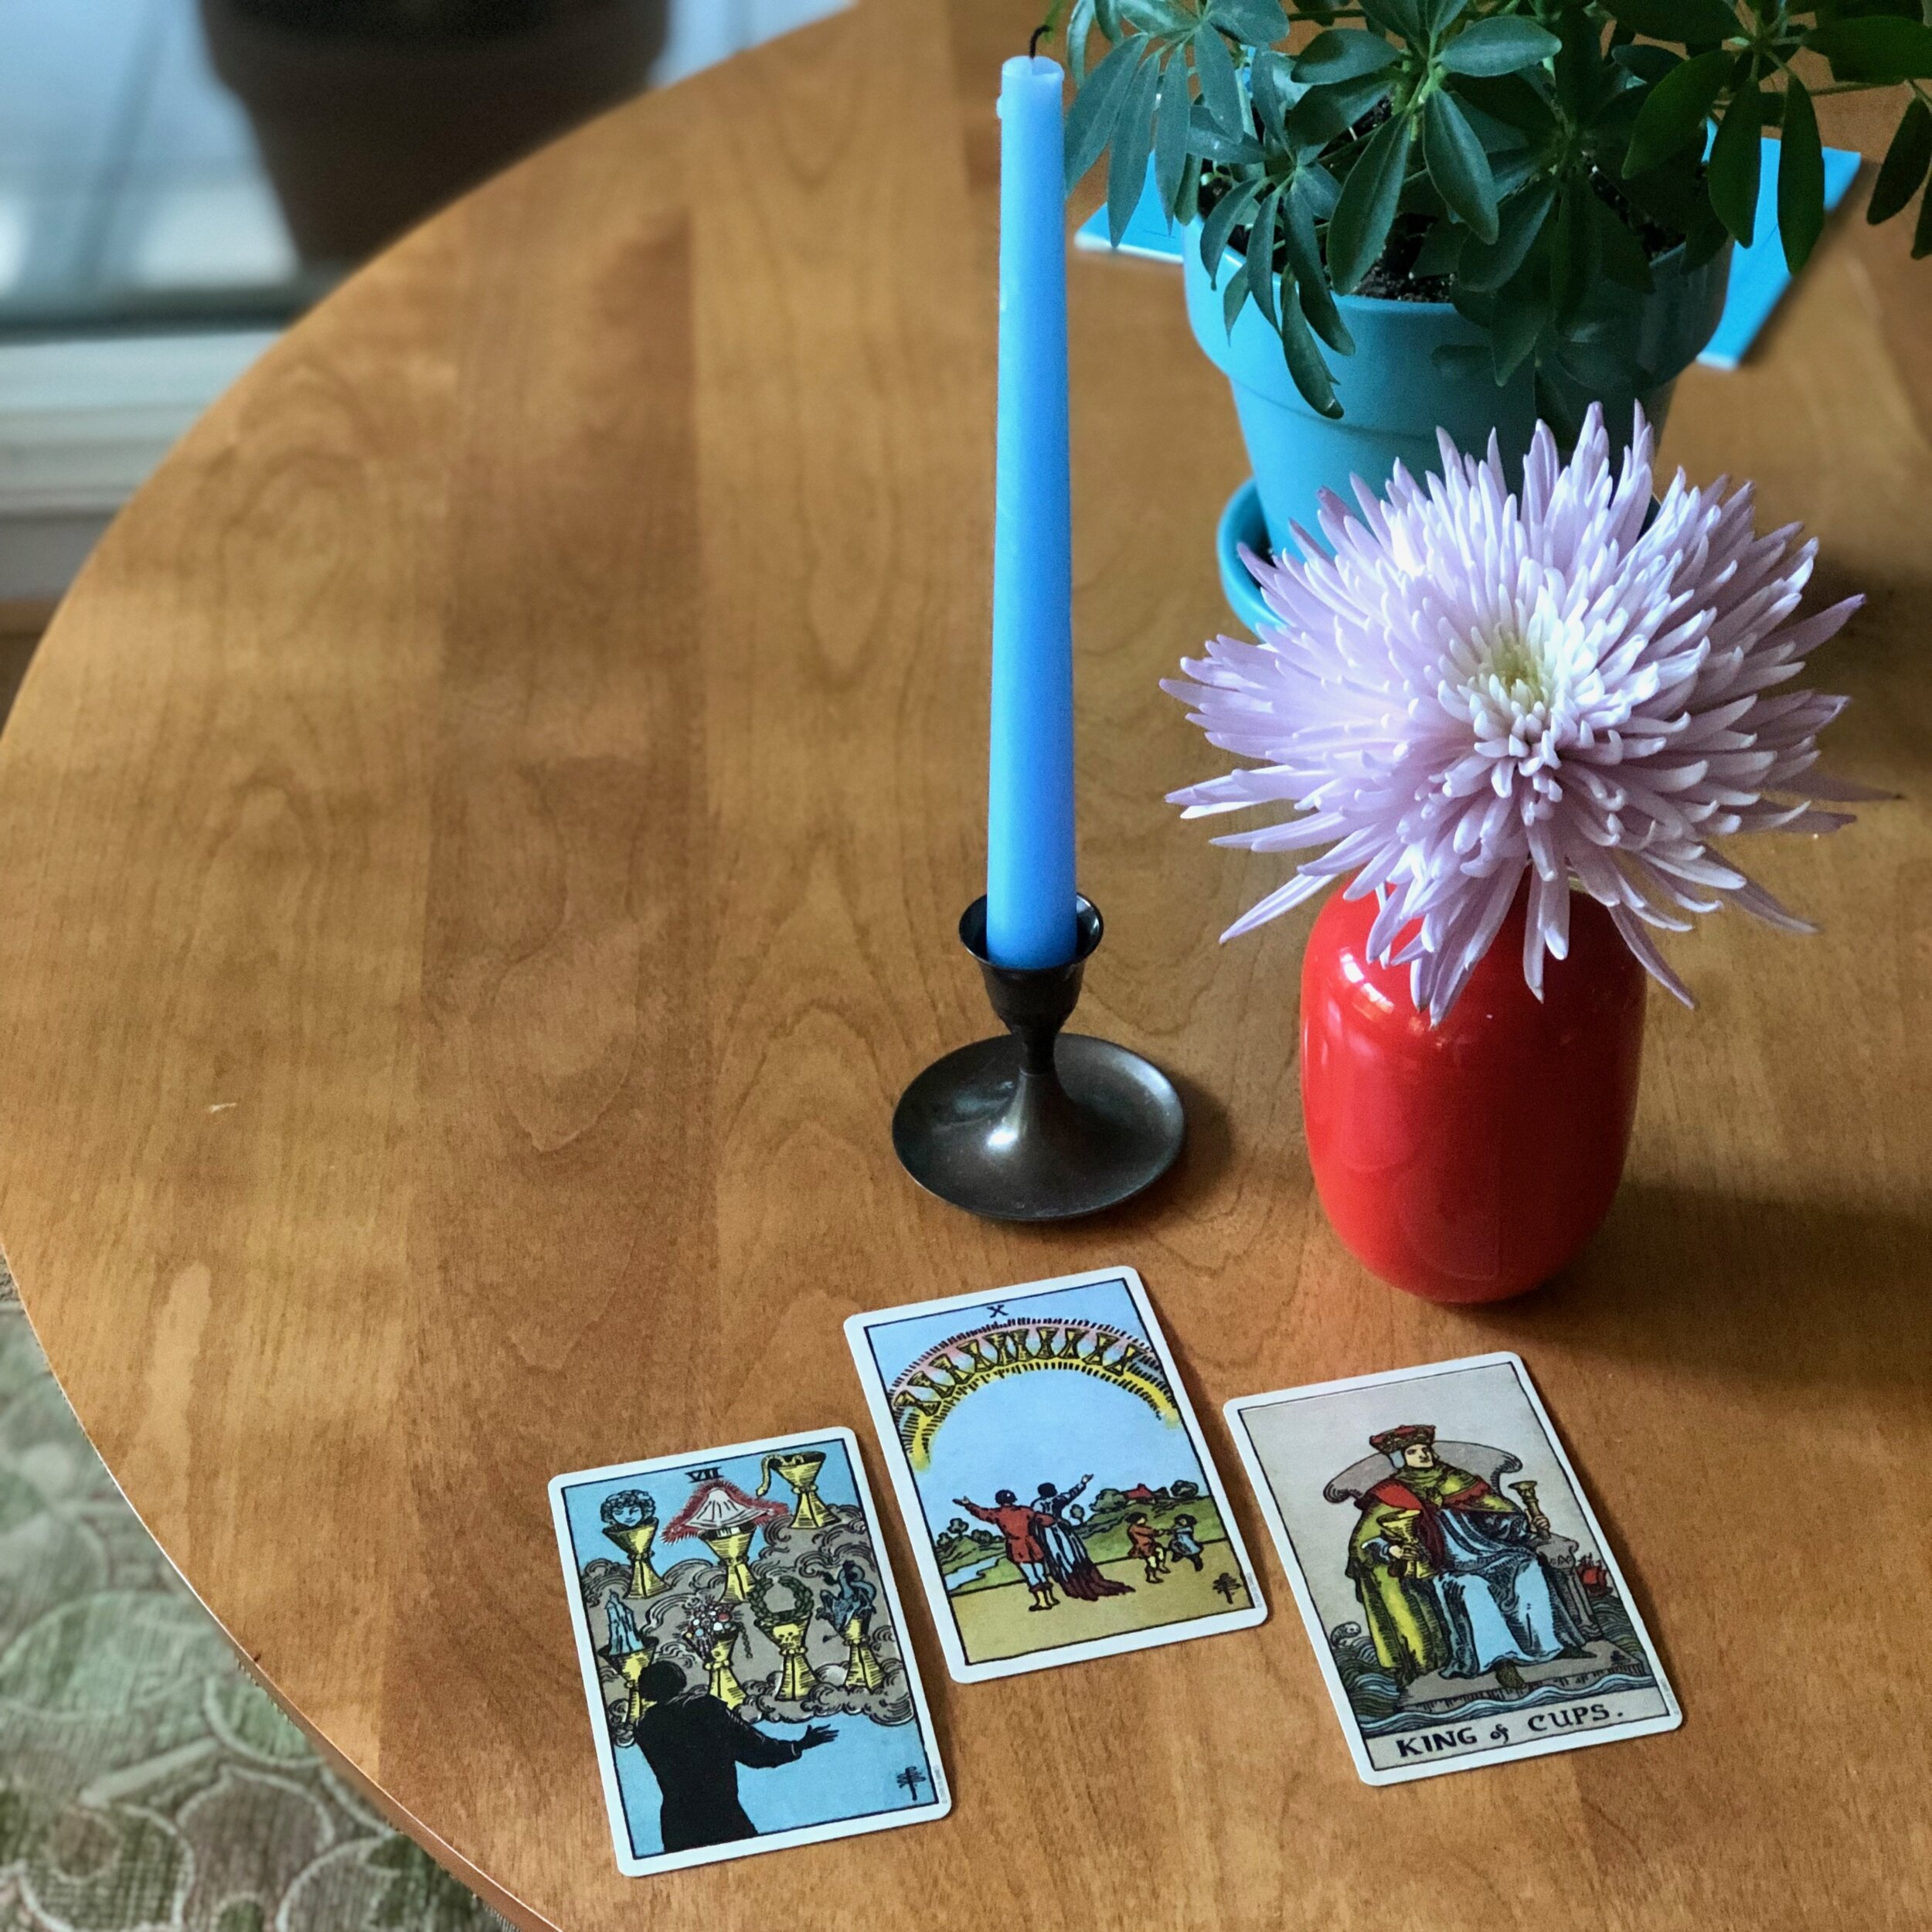 Three Card reading rider waite smith king of cups seven of cups ten of cups